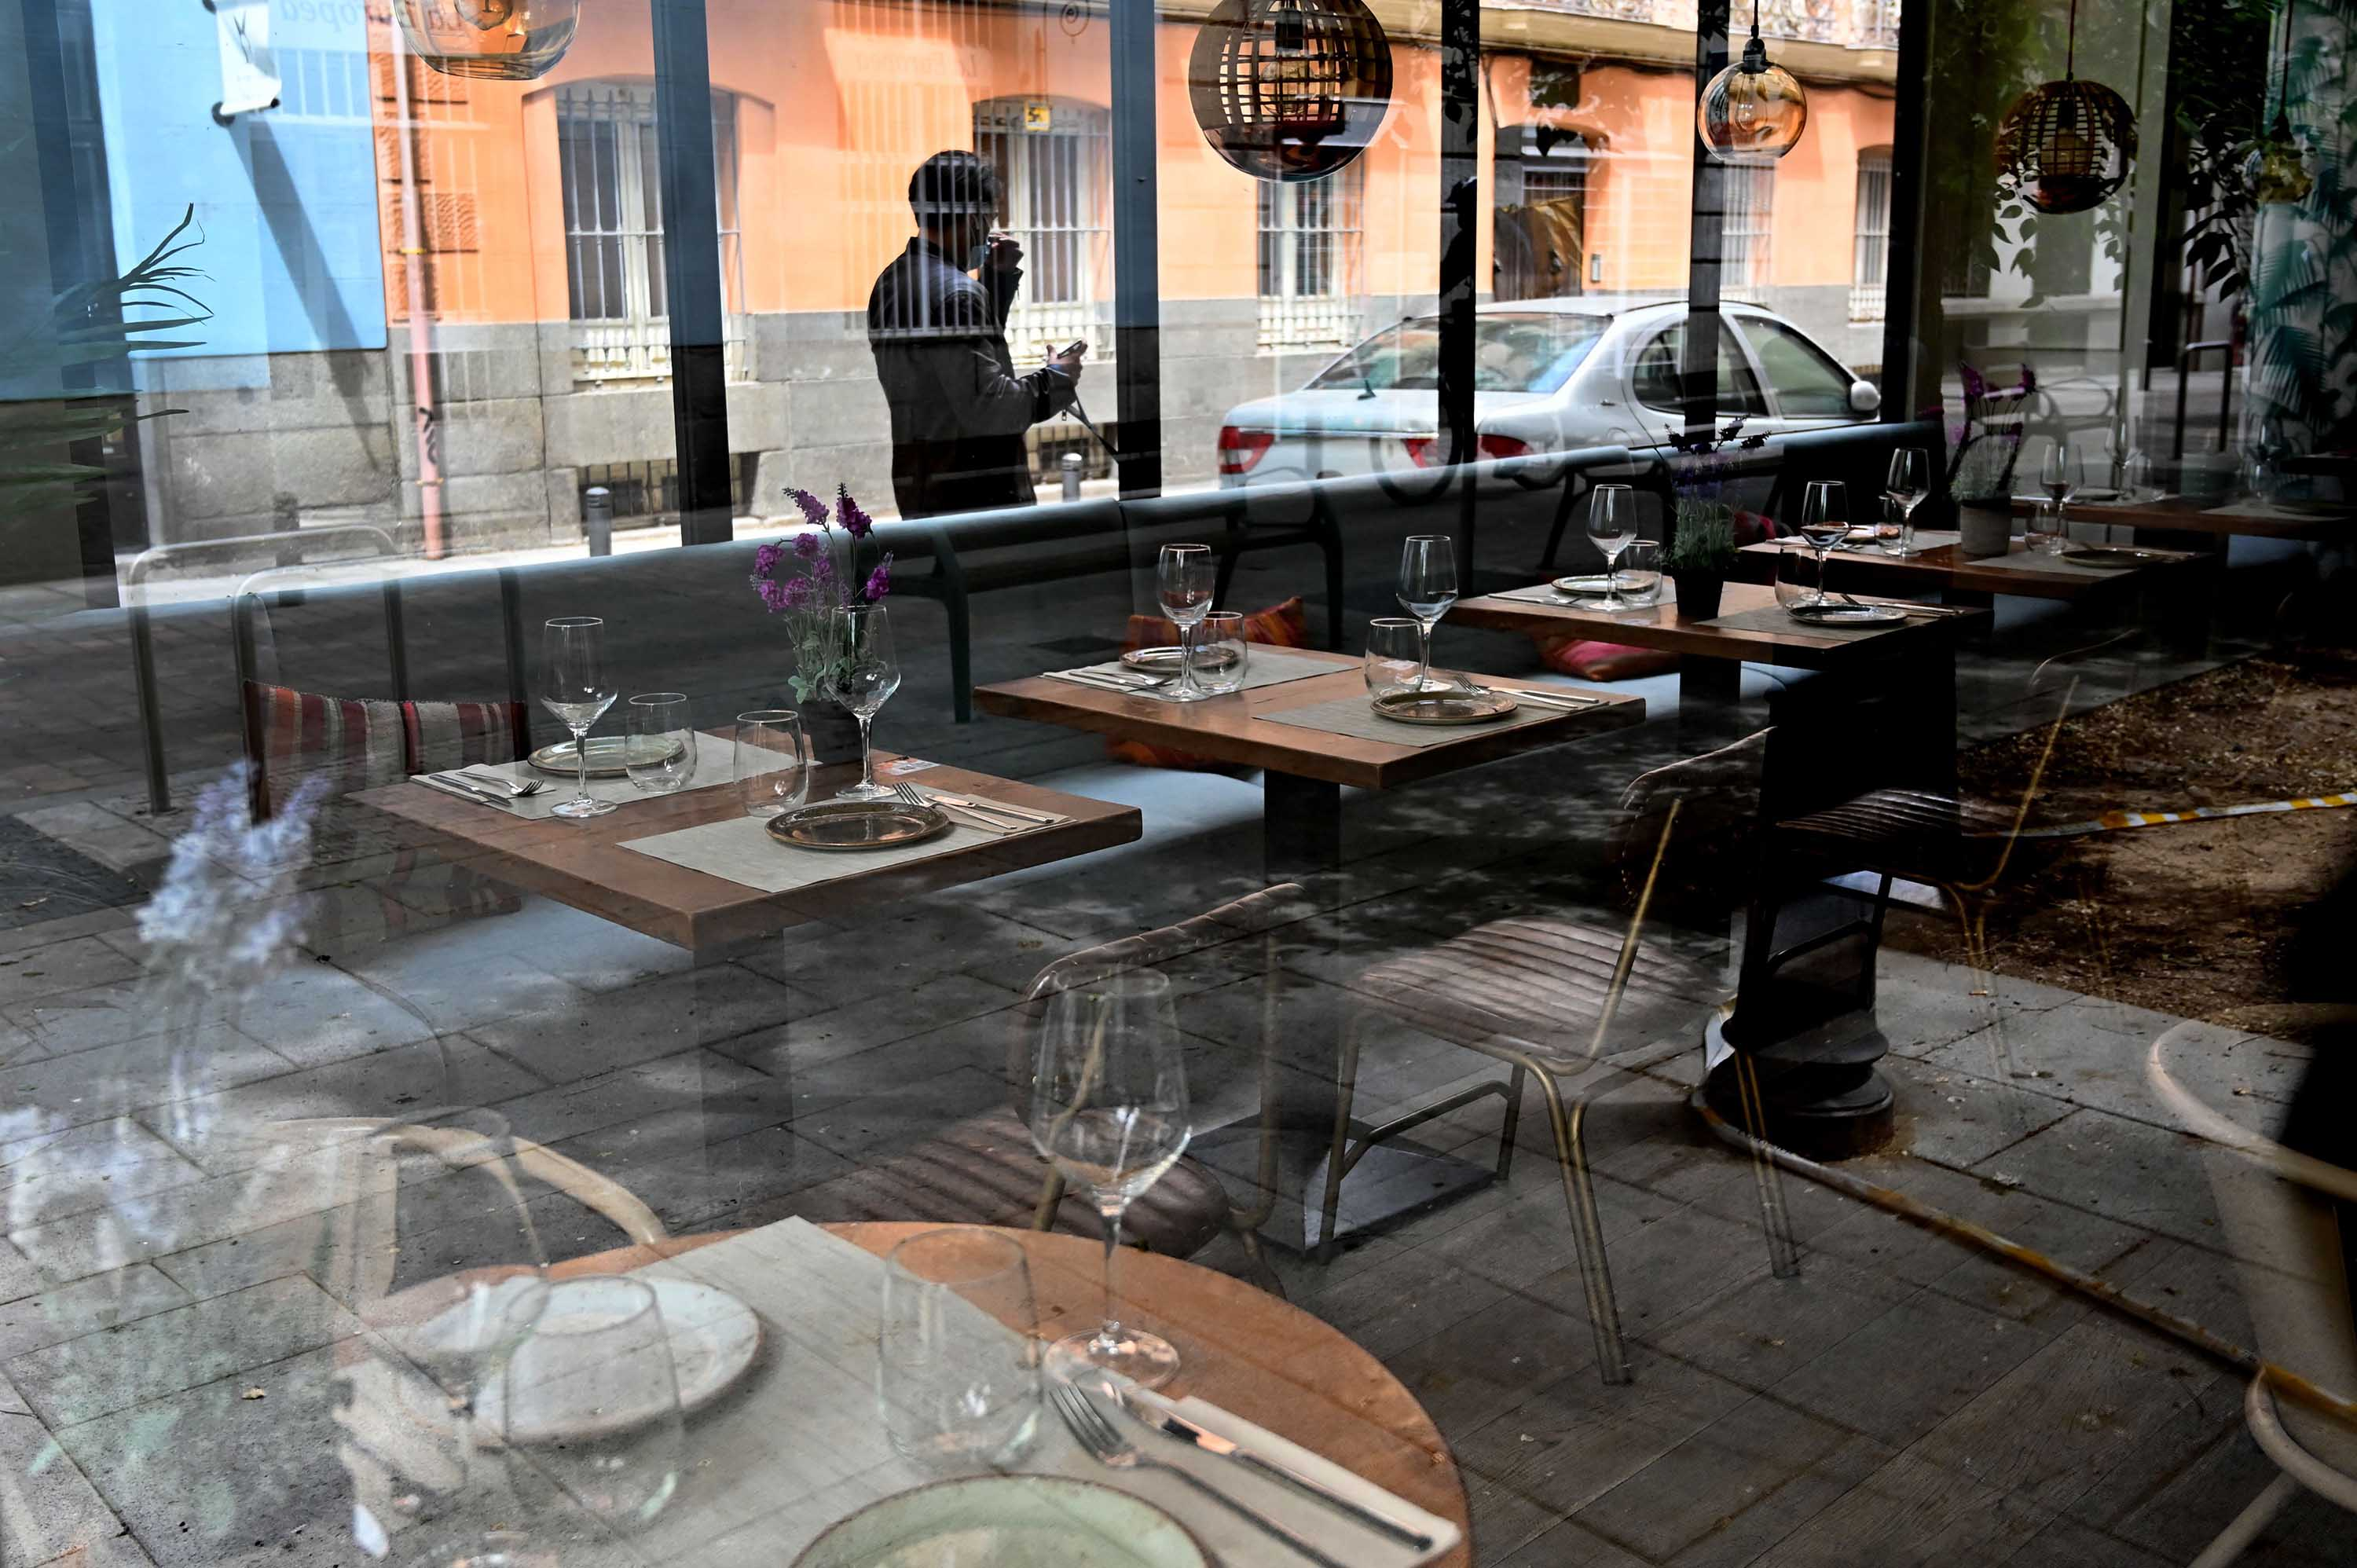 A restaurant remains closed during lockdown in Madrid, Spain, on May 4.